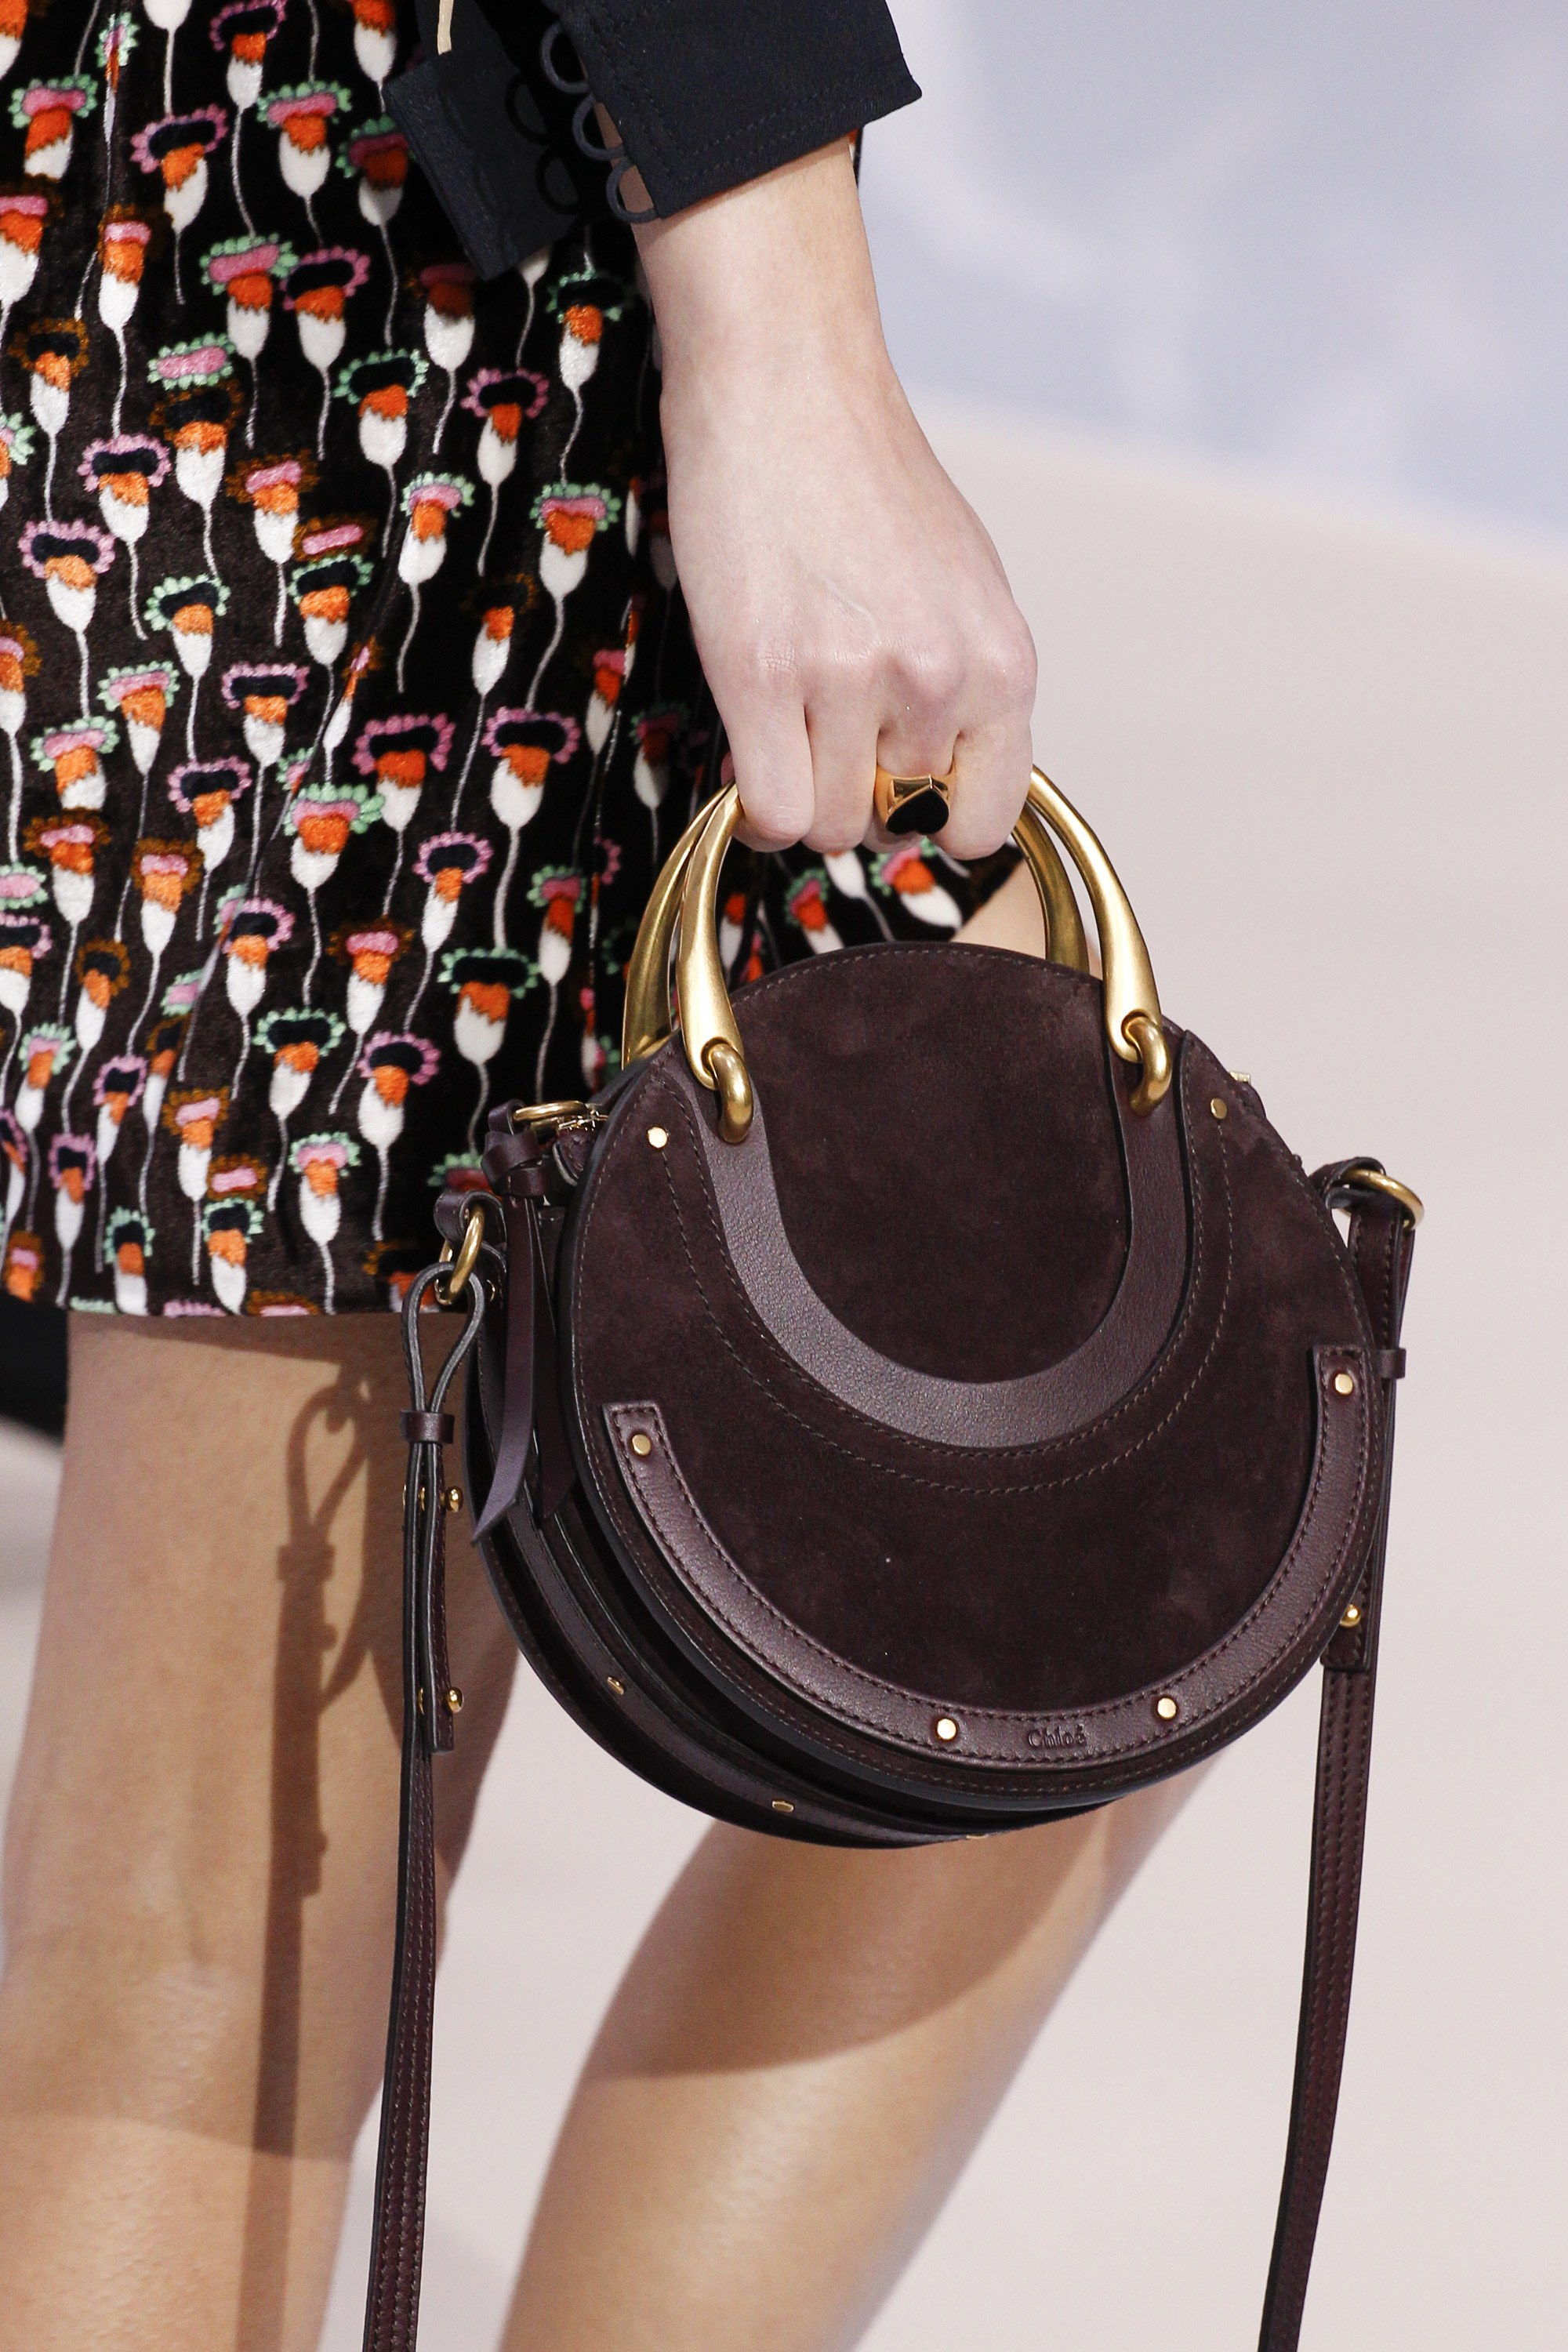 Chloe Fall Winter 2017 Runway Bag Collection Spotted Fashion